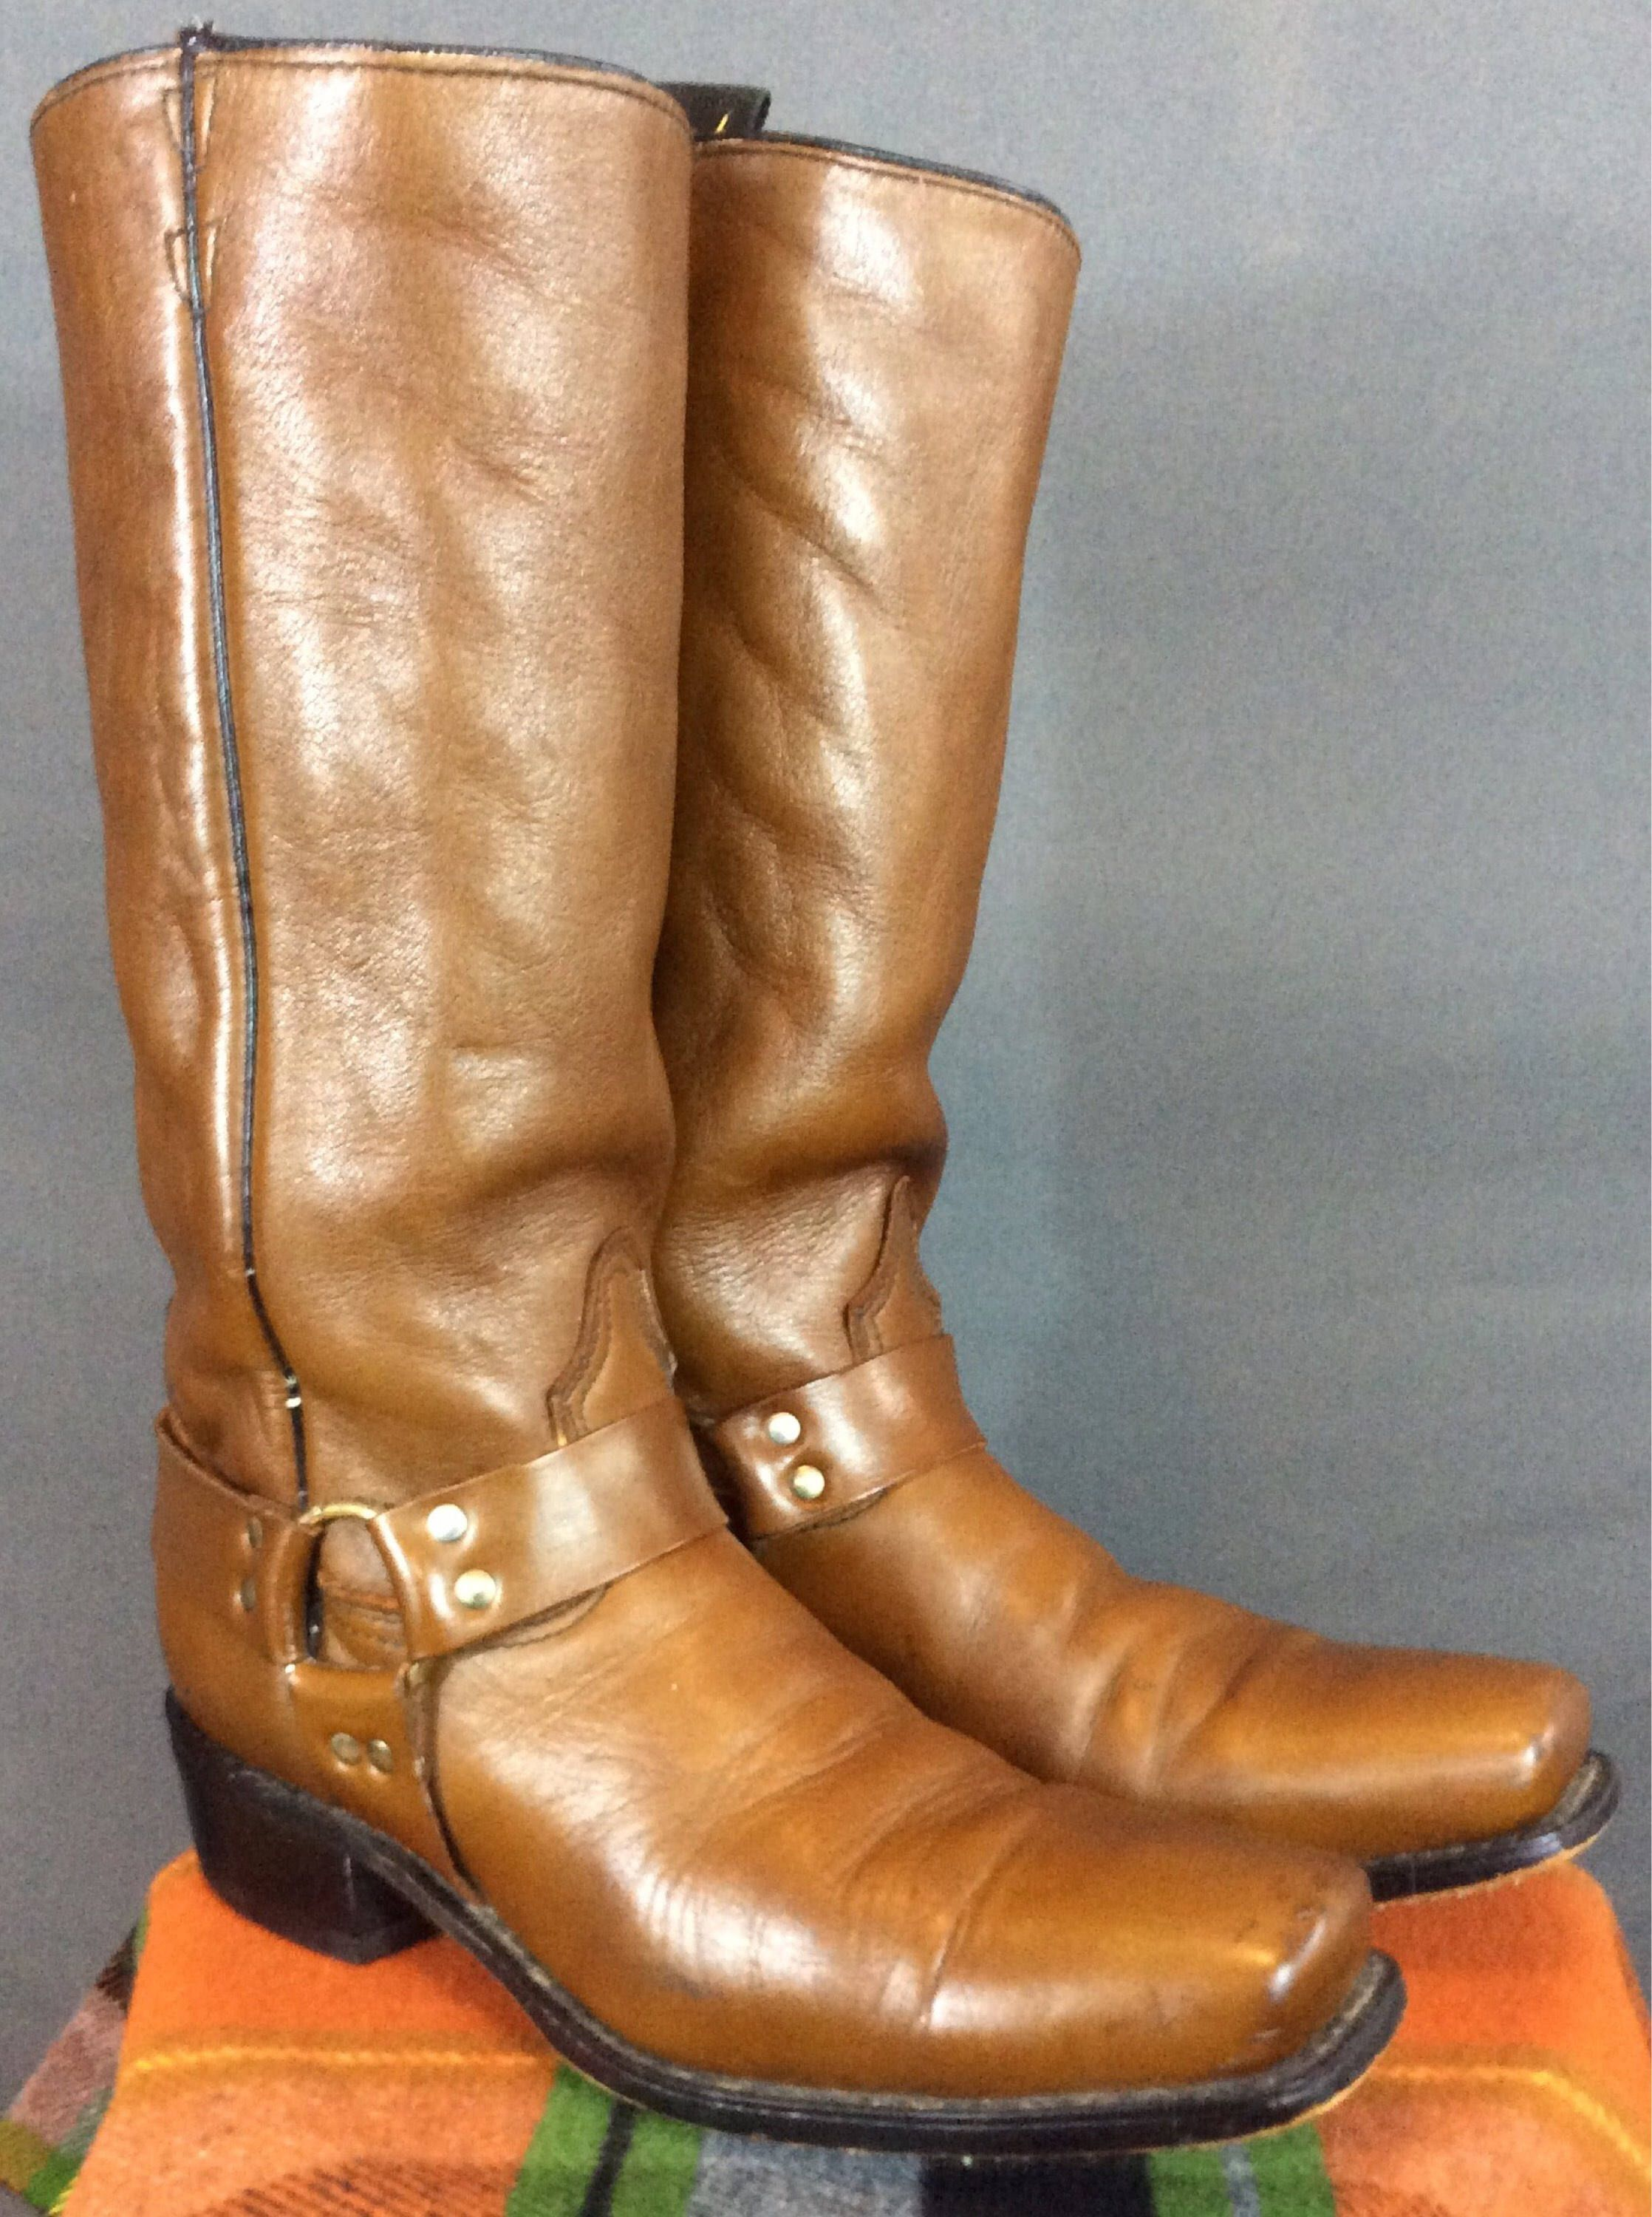 82f15c1427198 Vintage 70's Biker Boots Vintage Motorcycle Boots Harness Boots ...